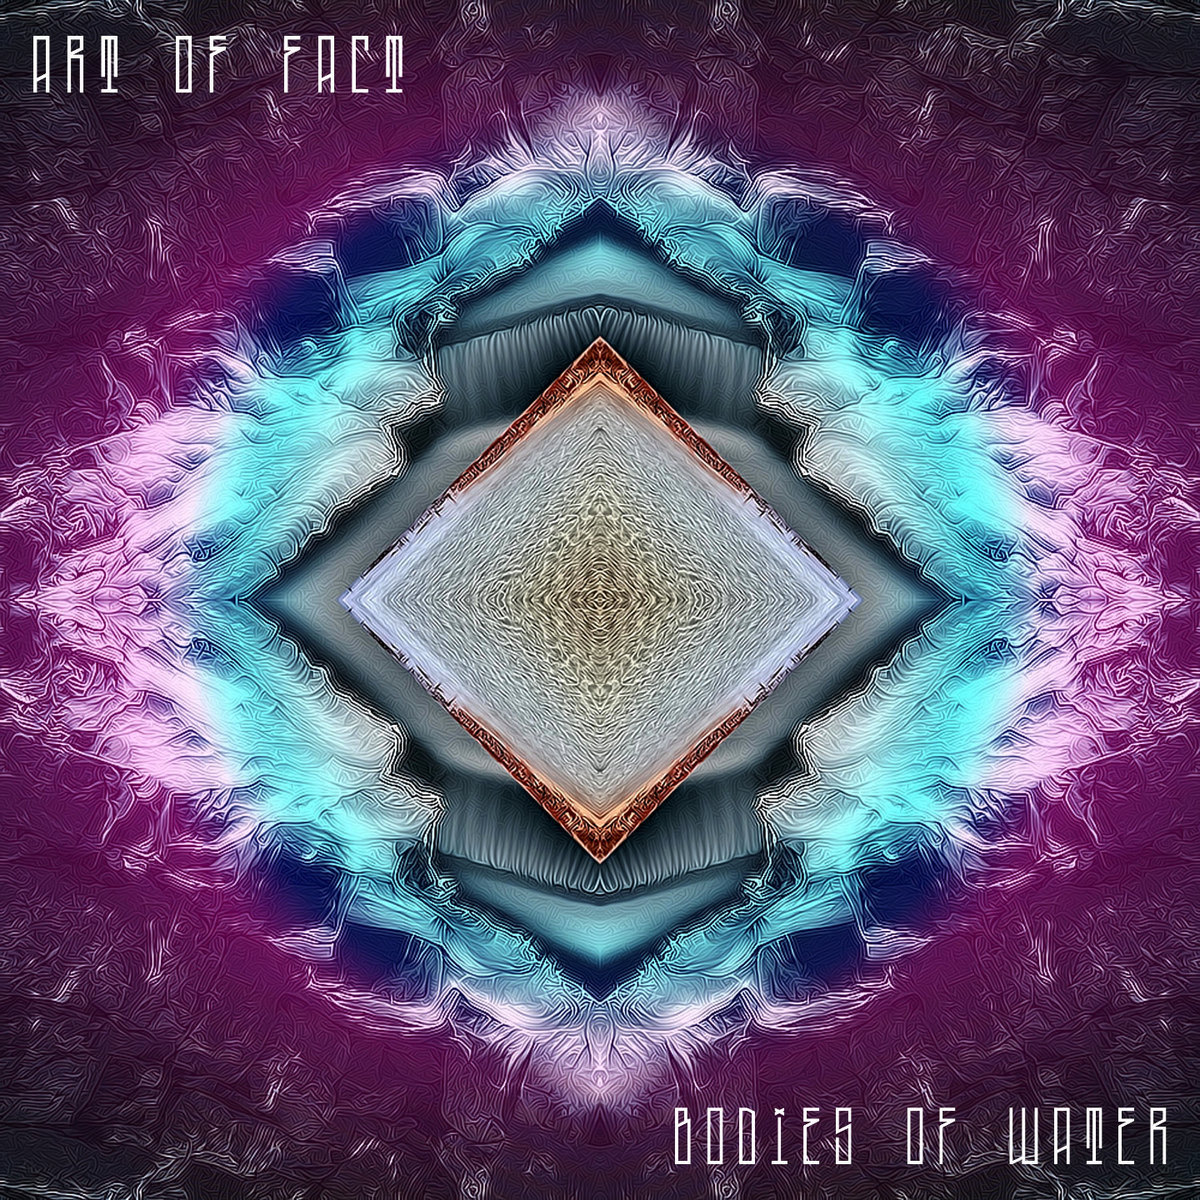 Art of Fact - Moonshine Showers @ 'Bodies of Water' album (electronic, dubstep)